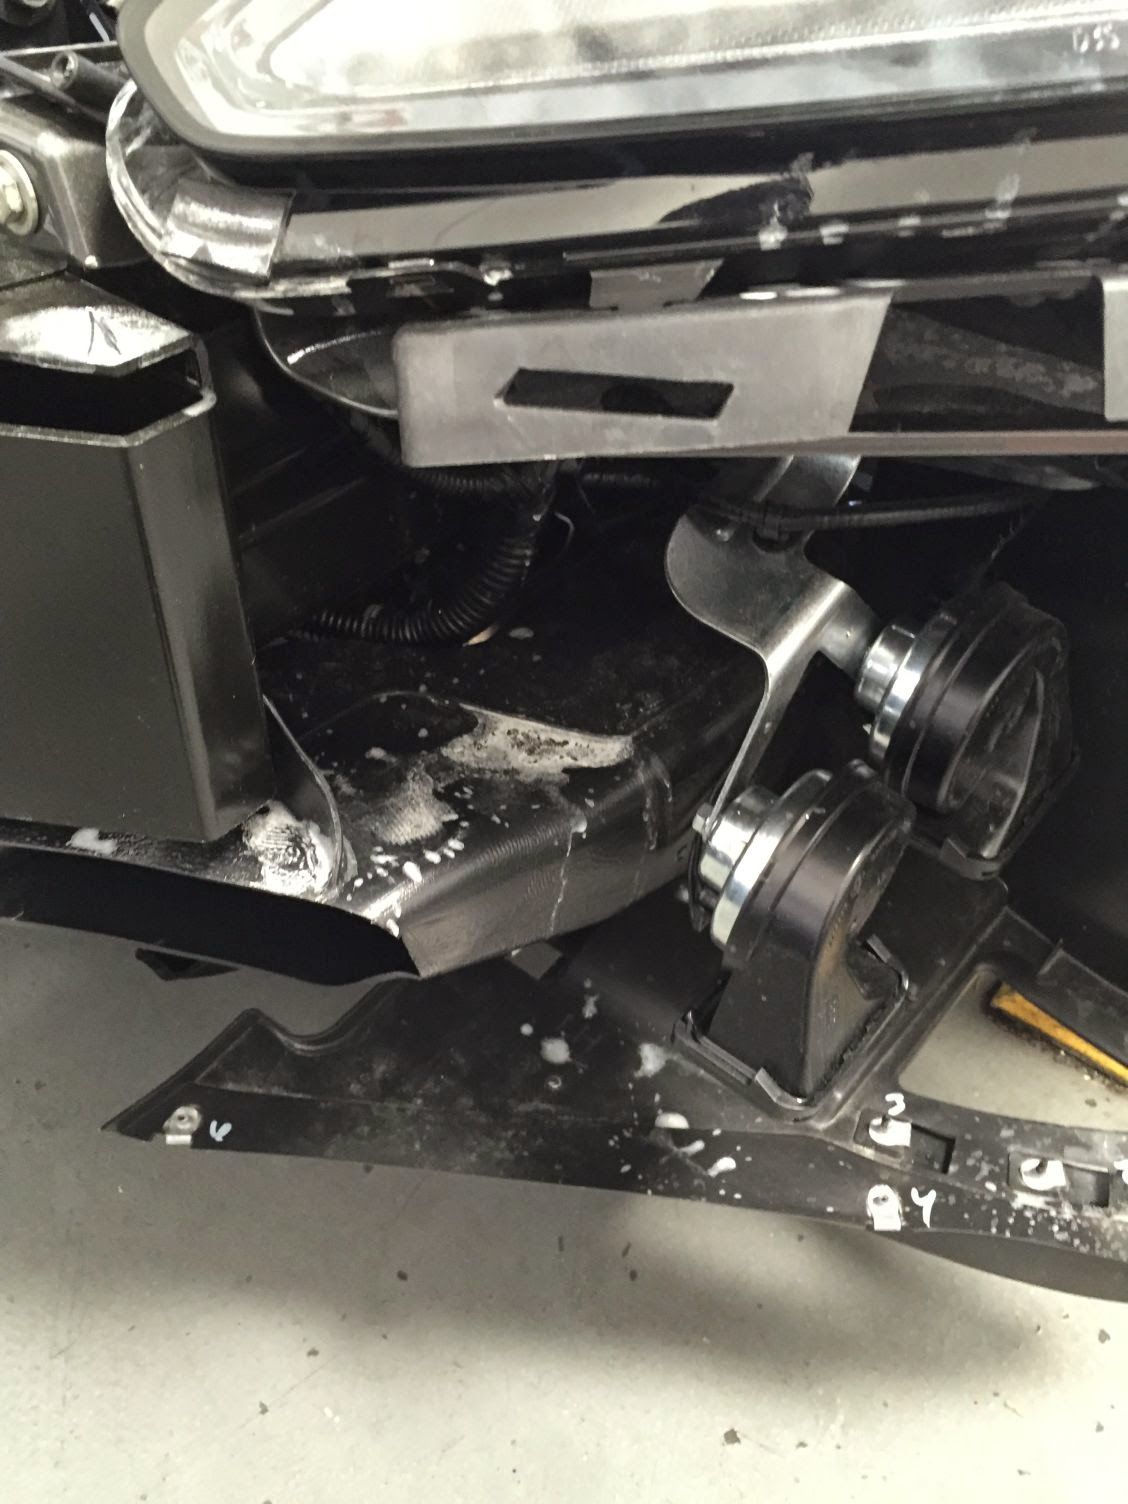 Courtesy Dealers Deliver Damaged 2015 Corvette C7 Z06 Cars To Stick Diagram For The Gm 8l90 Chances Of Or Dealer Assuming Responsibility Condition This Car And Addressing Pretty Extensive Damages Are About Same As Bowling